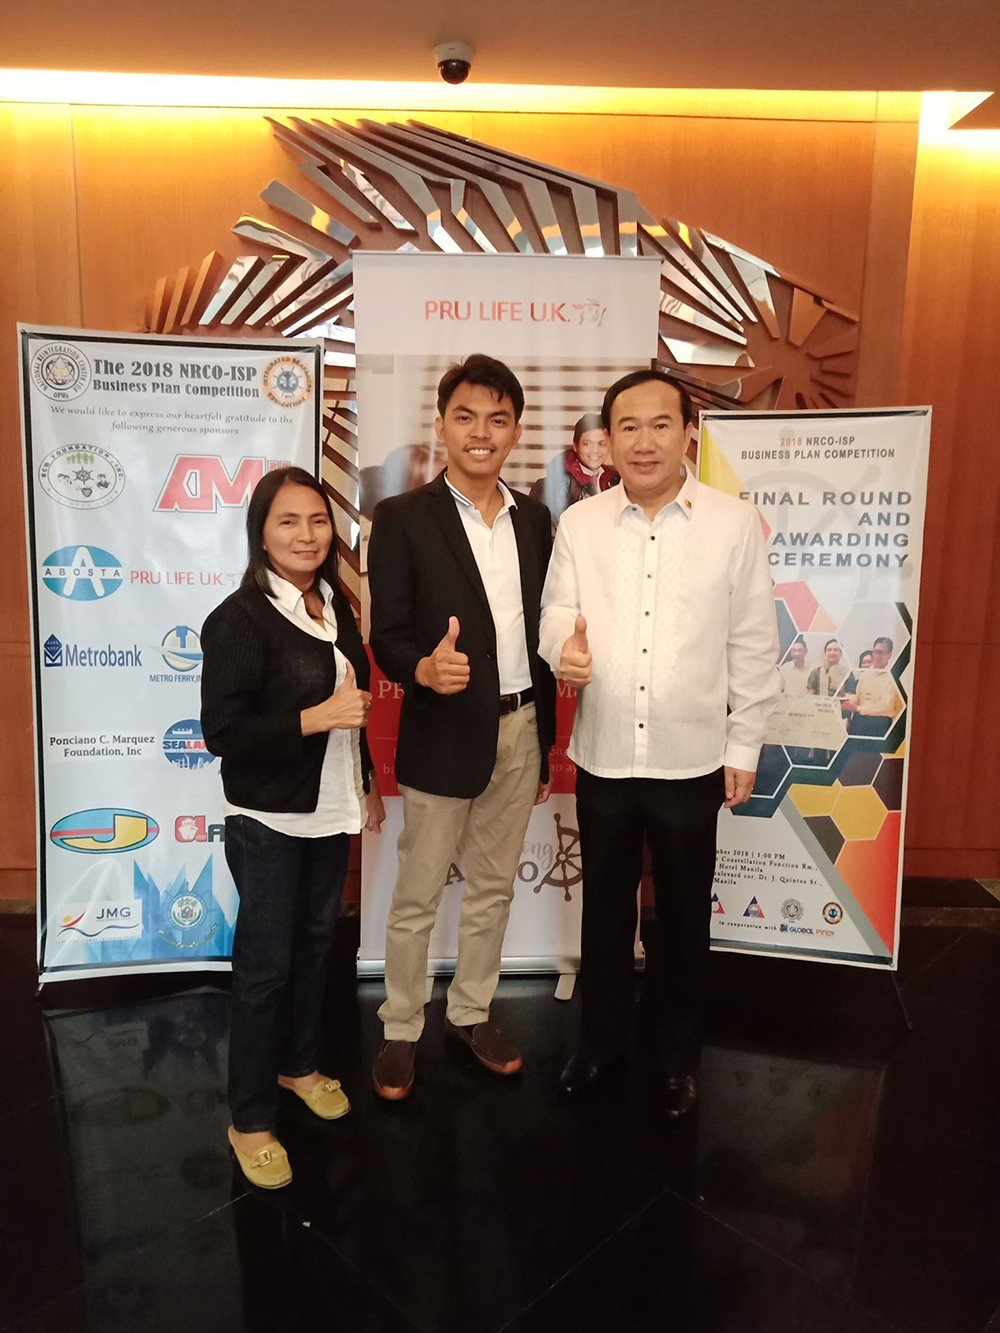 Family support. Nelson Mejia (center) is flanked by his mother Rubirosa and uncle Rodrigo after he is awarded the trophy for best business plan. (Contributed foto)